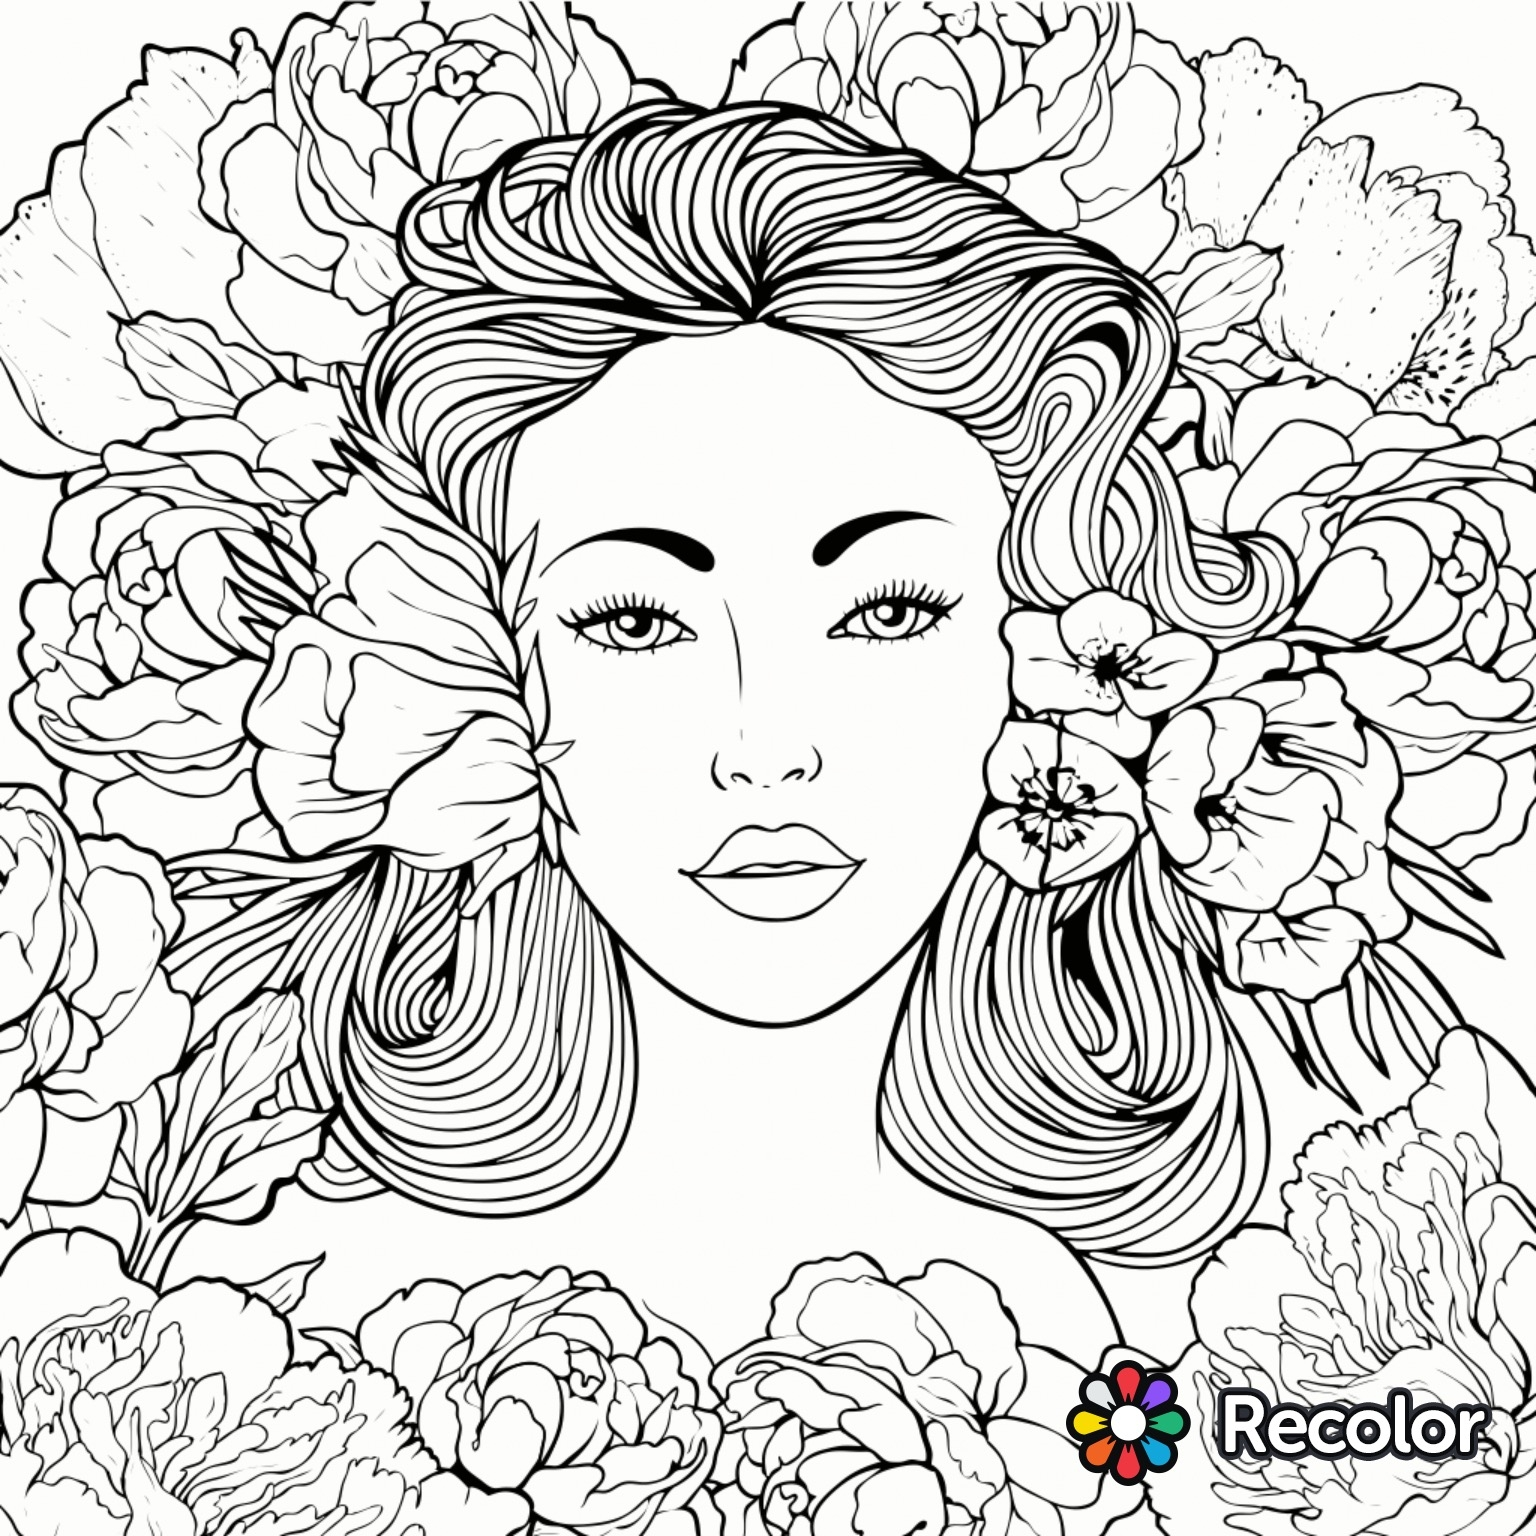 recolor coloring pages -